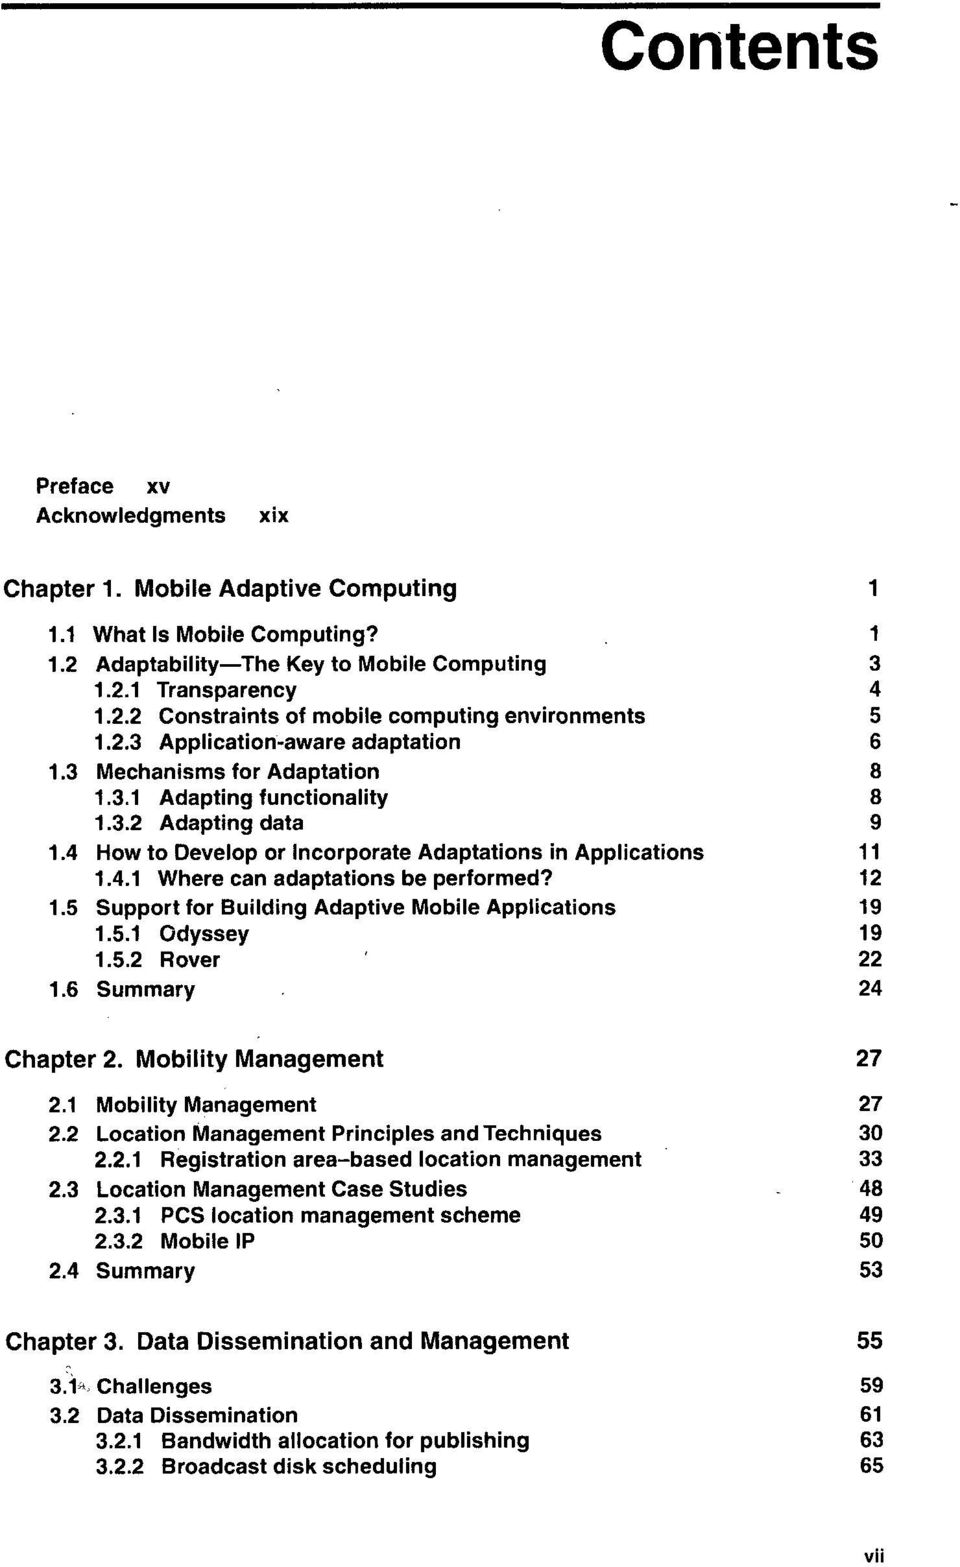 12 1.5 Support for Building Adaptive Mobile Applications 19 1.5.1 Odyssey 19 1.5.2 Rover 22 1.6 Summary 24 Chapter 2. Mobility Management 27 2.1 Mobility Management 27 2.